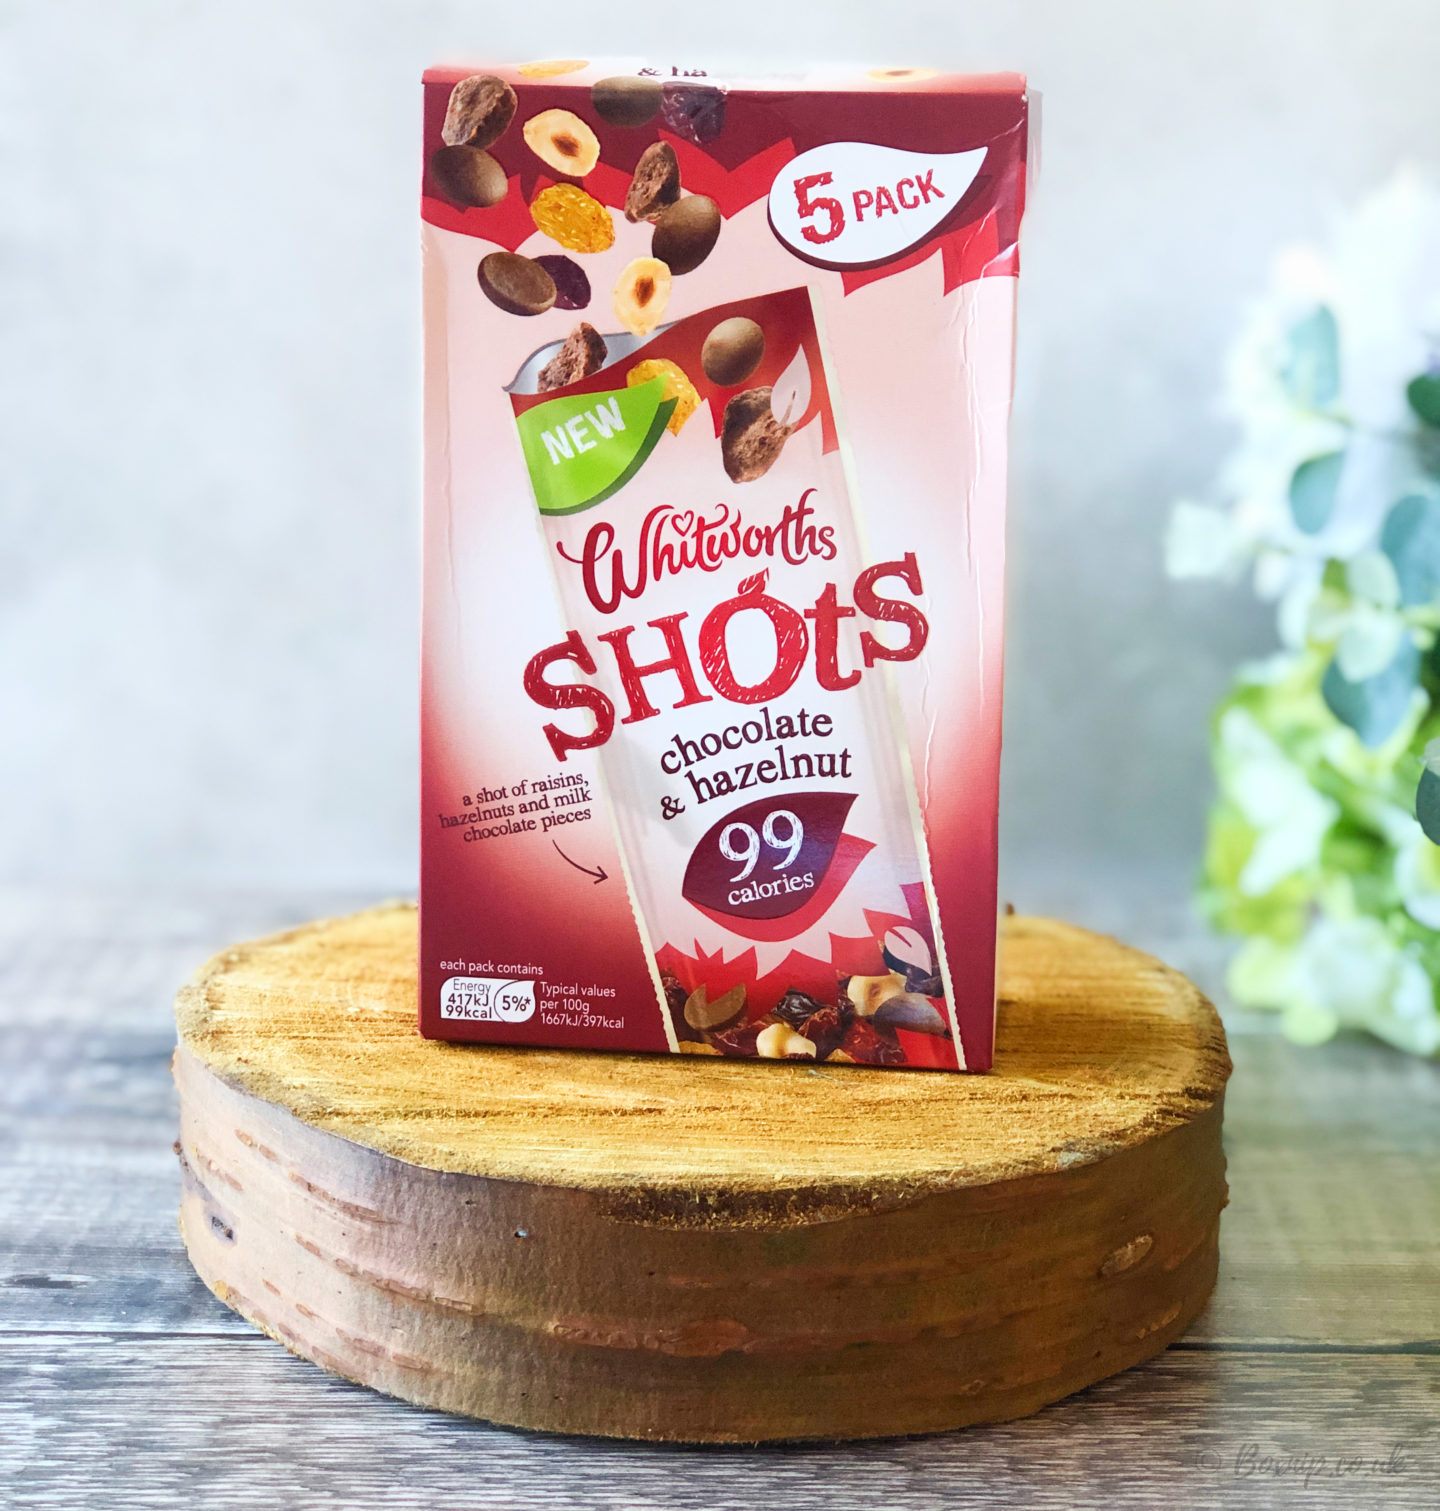 Whitworths Shots - Chocolate & Hazelnuts - October 2019 Degusta Box